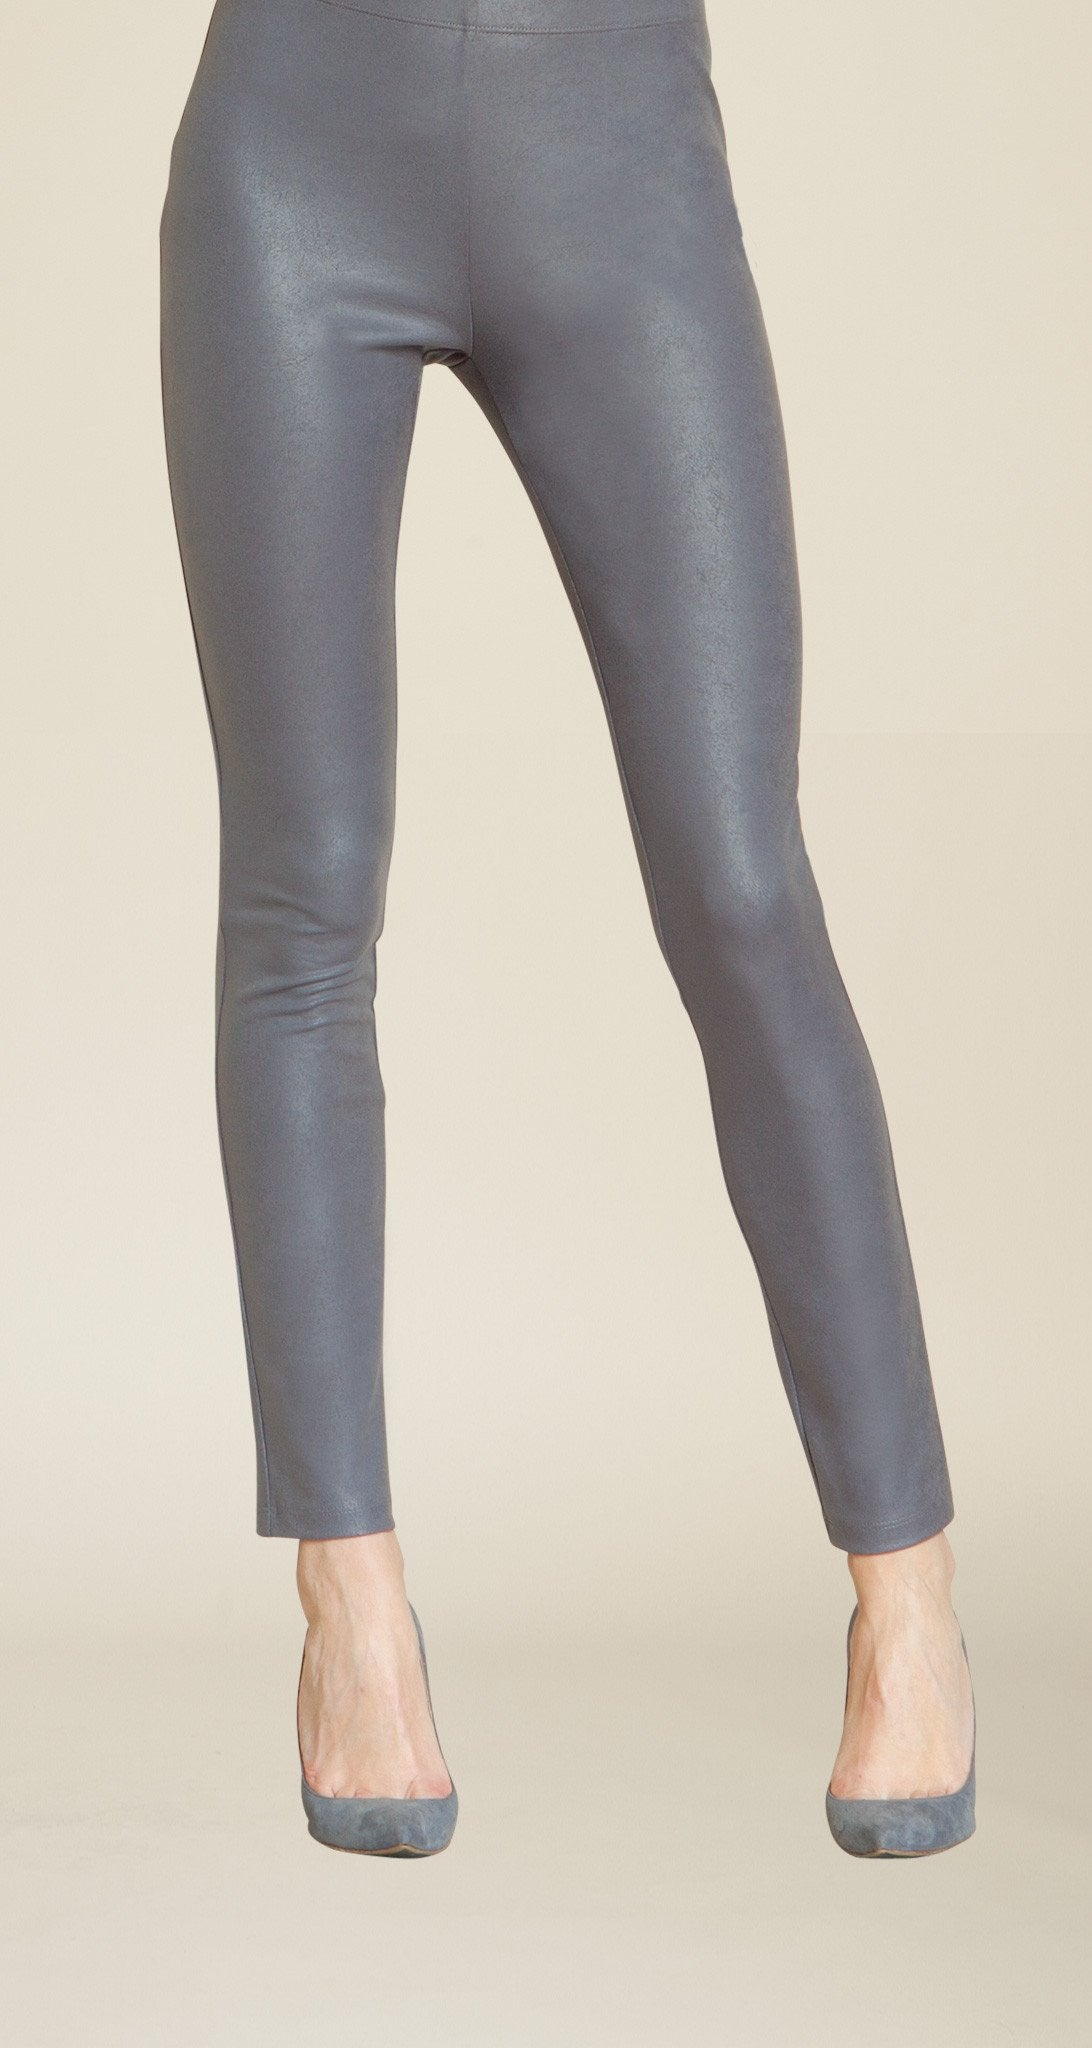 Liquid Leather Legging - Charcoal - Clara Sunwoo